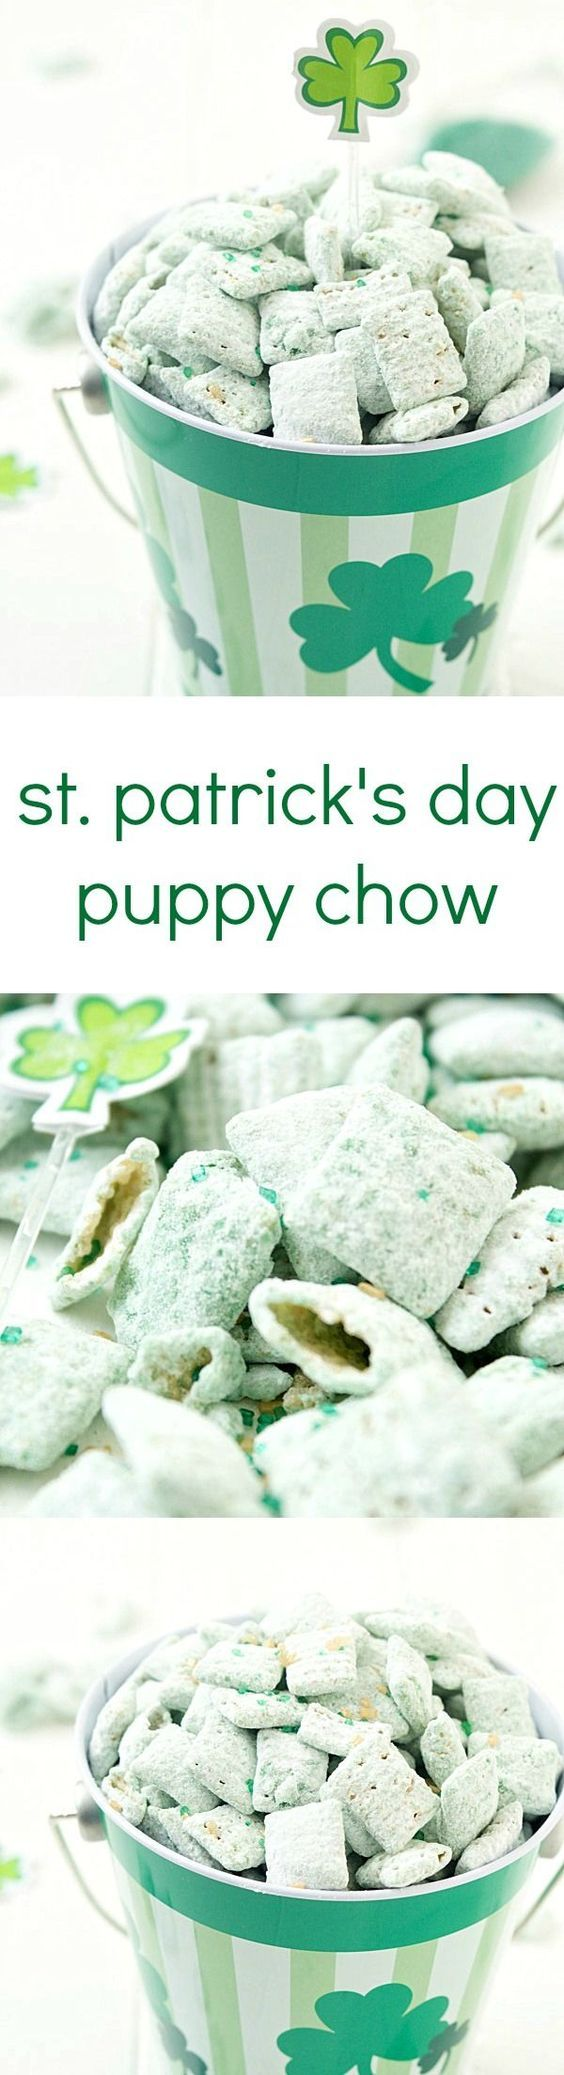 St. Patrick's Day Puppy Chow Recipe - The perfect green and minty snack! Beware, it's highly addictive and you will not be able to stop!: